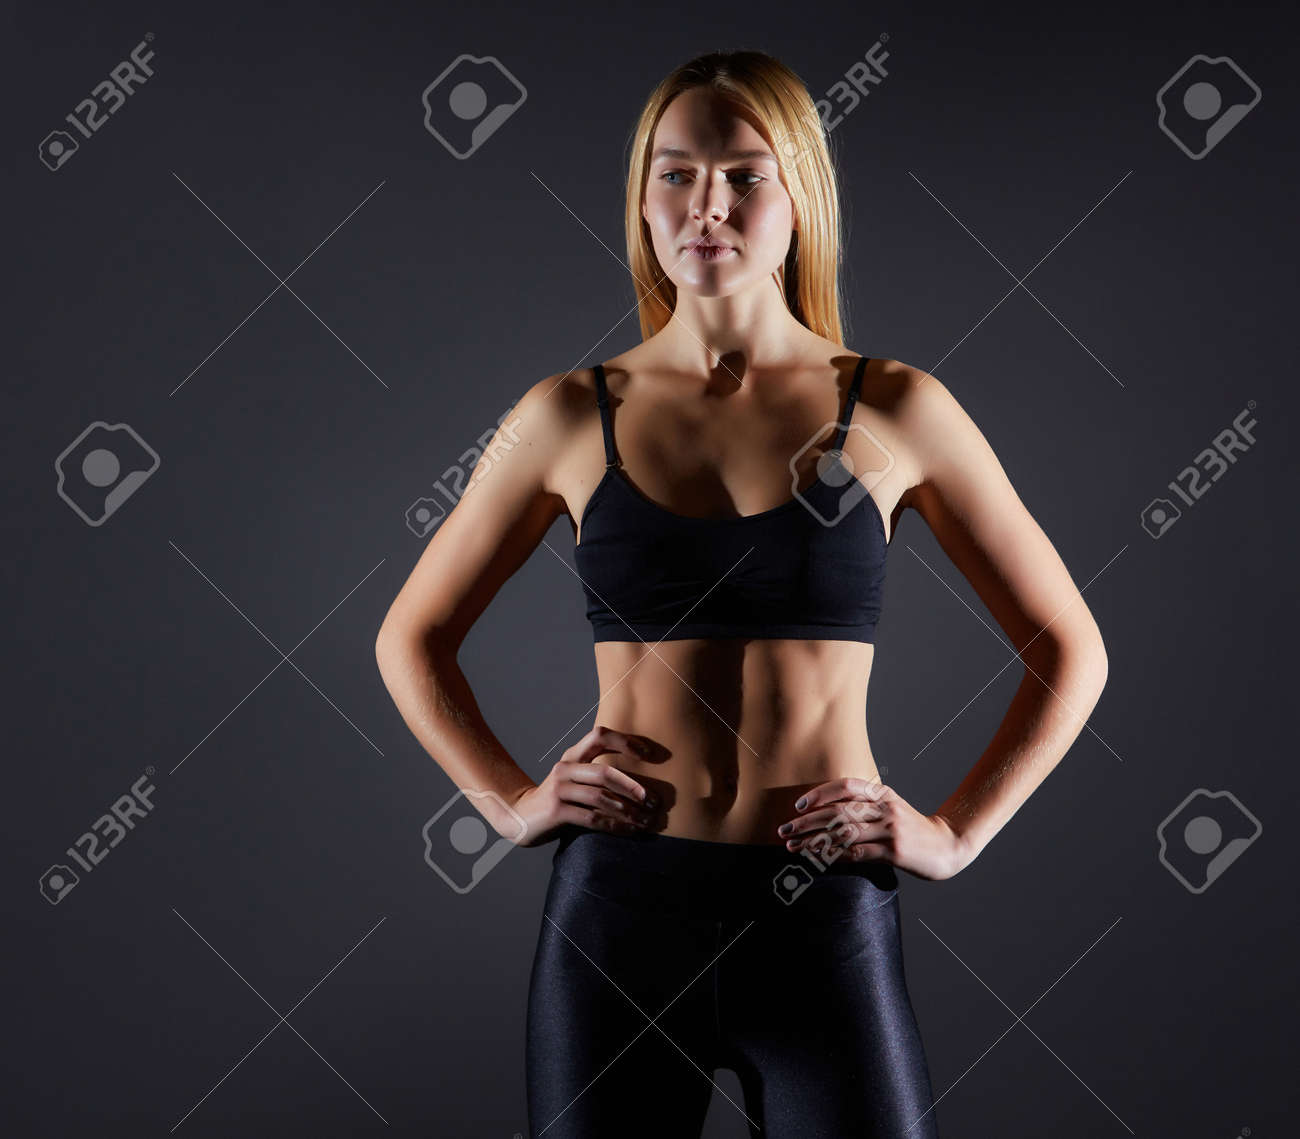 Sportive blonde girl on the background of the black wall of the gym. Body relief and hair sweep - 169021116